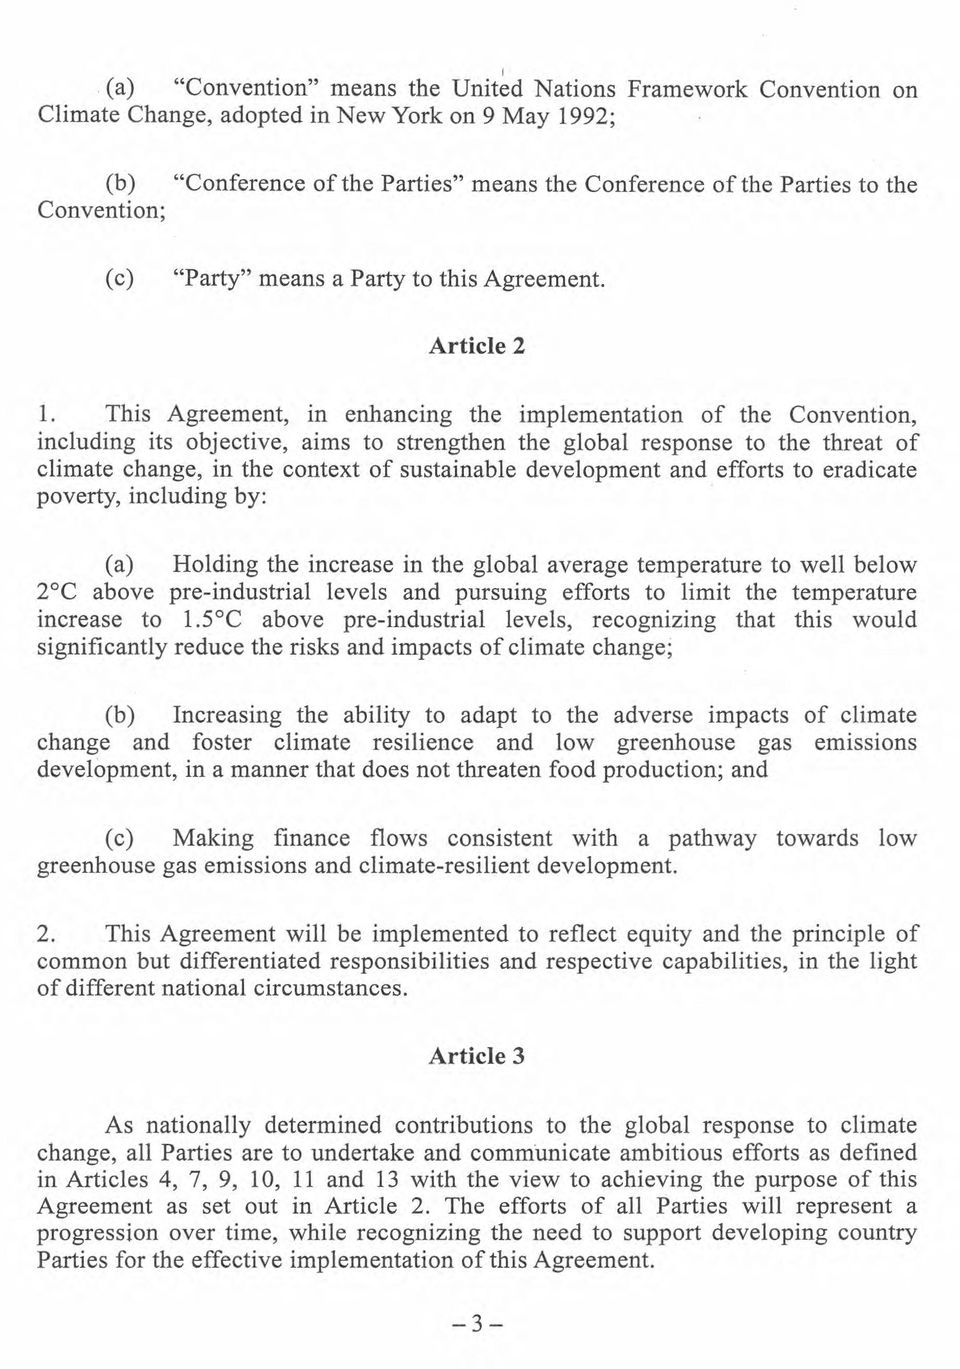 This Agreement, in enhancing the implementation of the Convention, including its objective, aims to strengthen the global response to the threat of climate change, in the context of sustainable